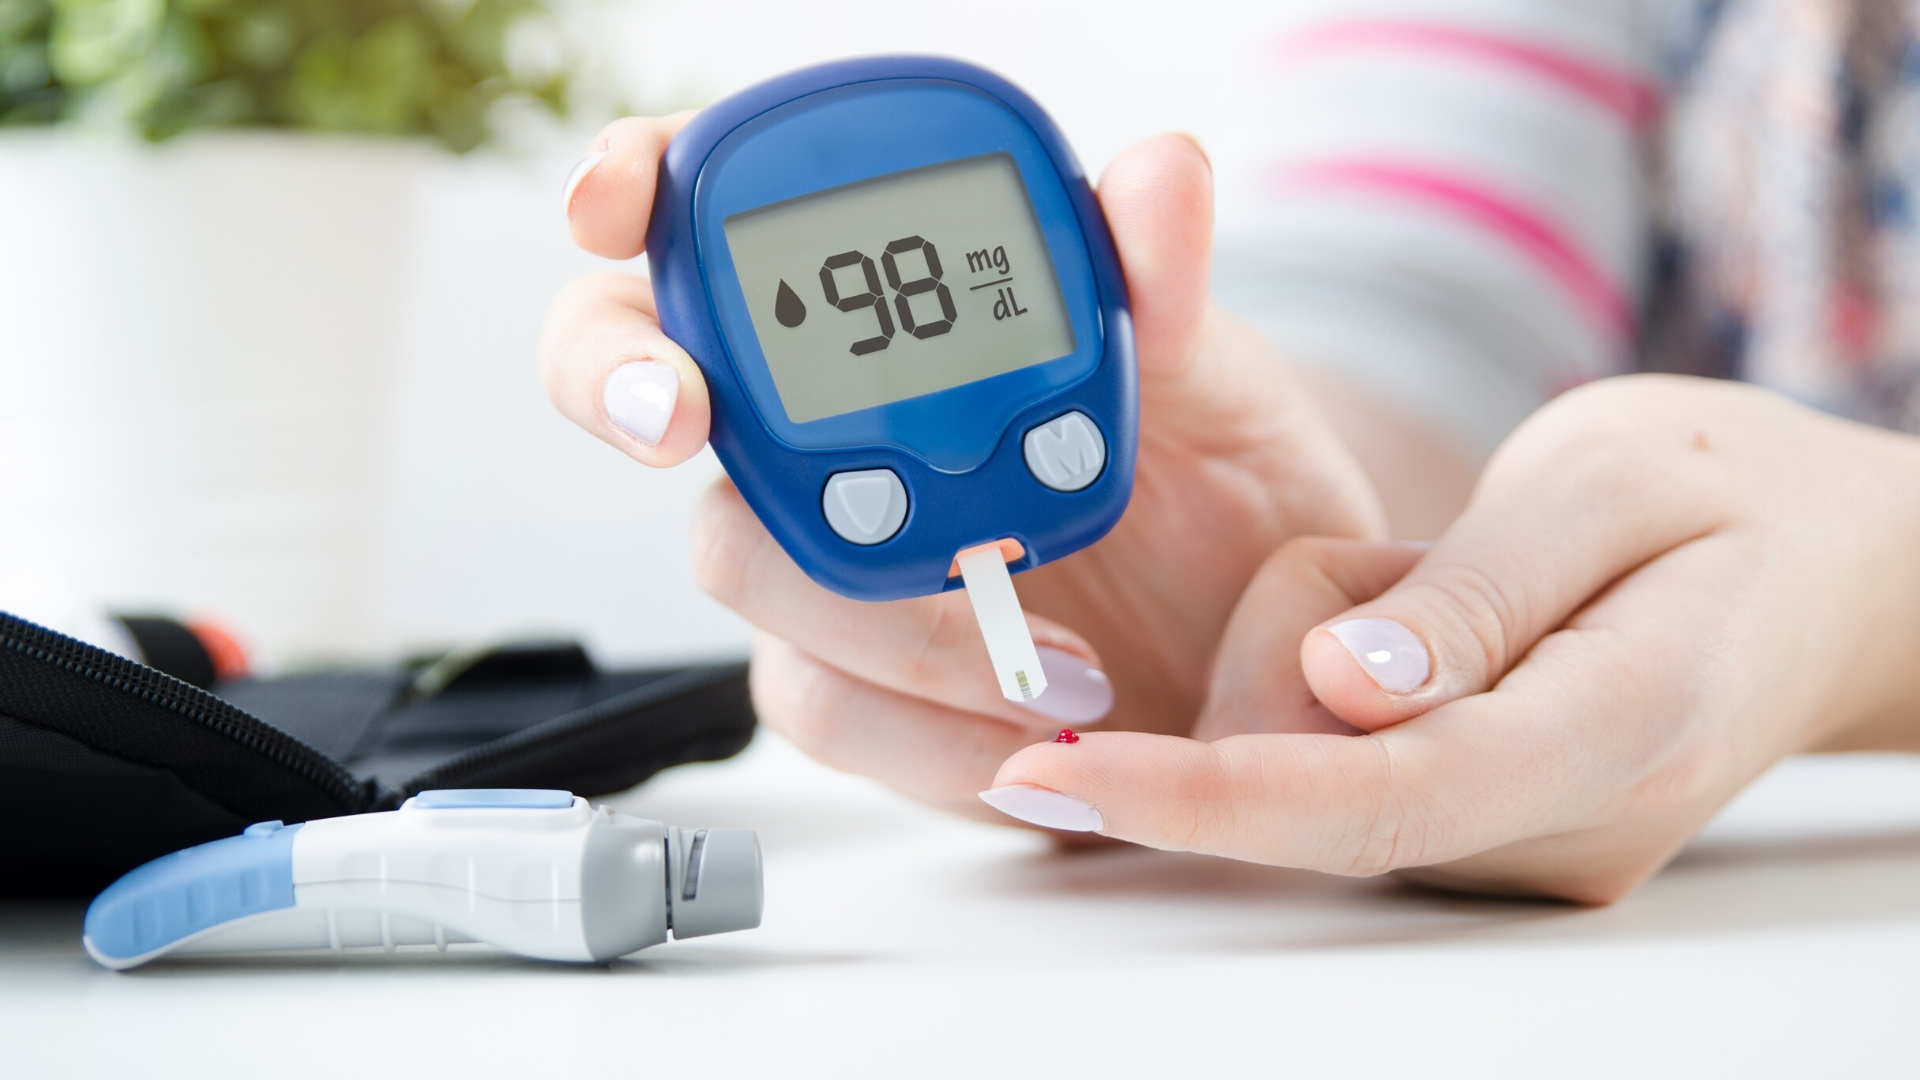 The Drawbacks of Invasive Glucometer